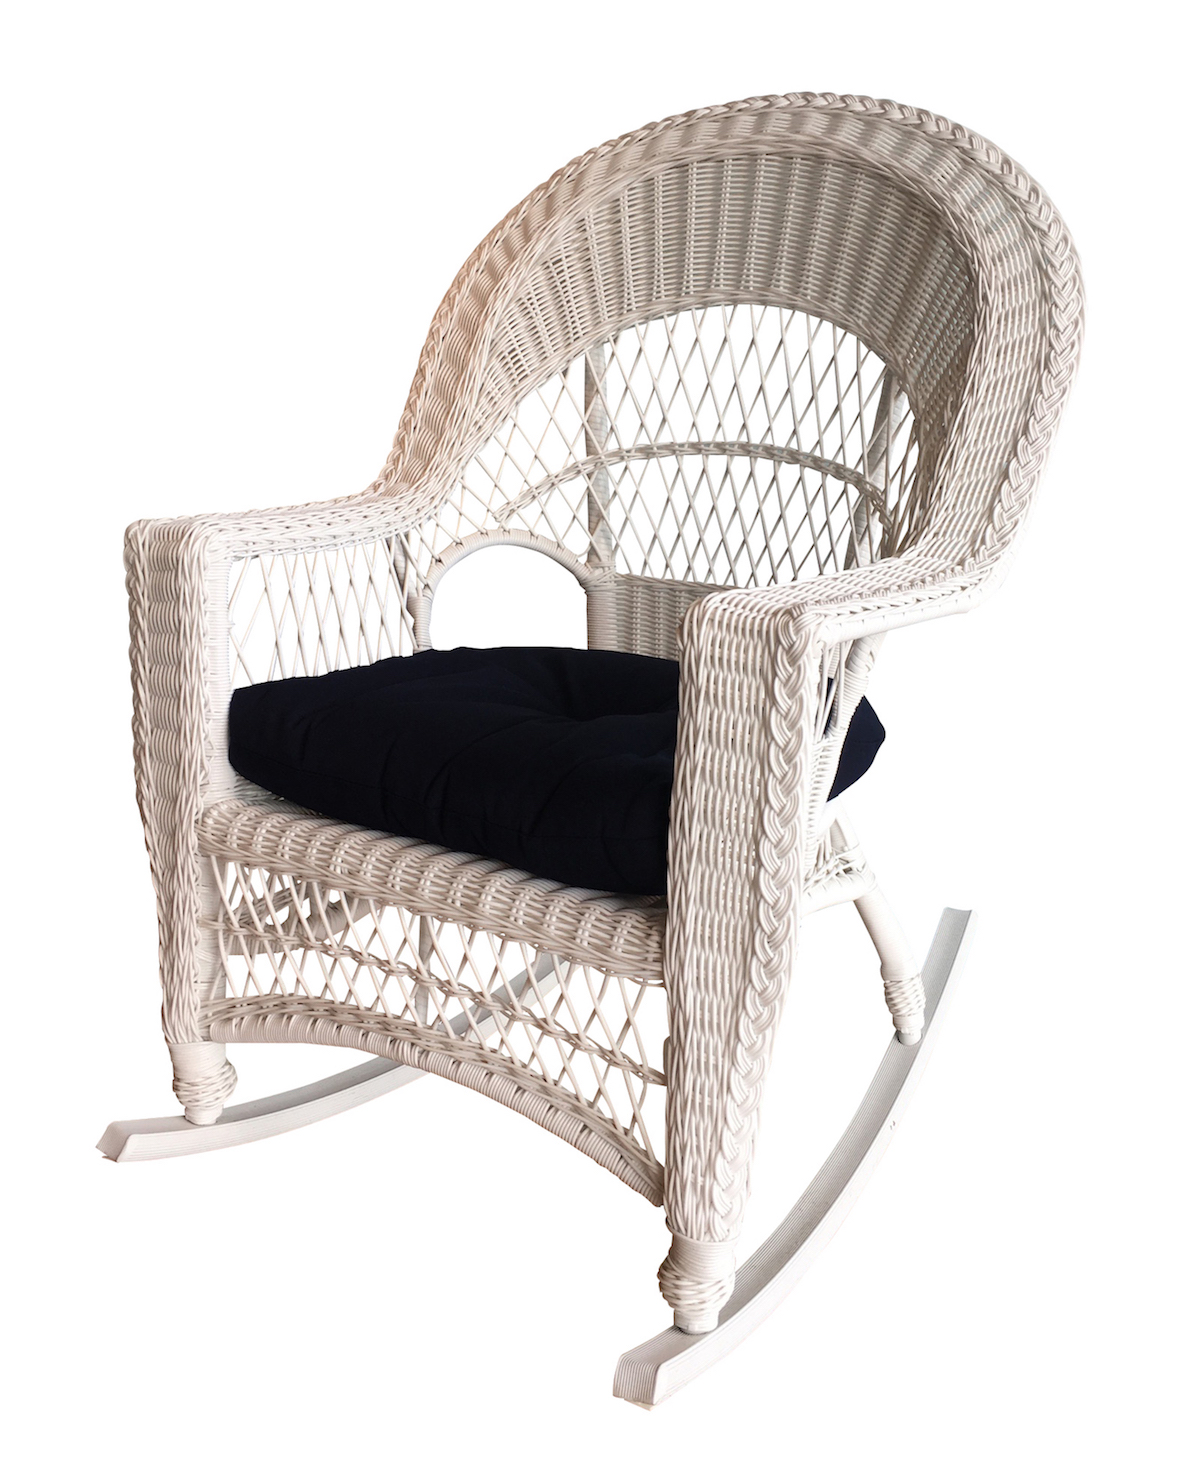 Prime Wicker Rocking Chairs Outdoors Budapestsightseeing Org Machost Co Dining Chair Design Ideas Machostcouk